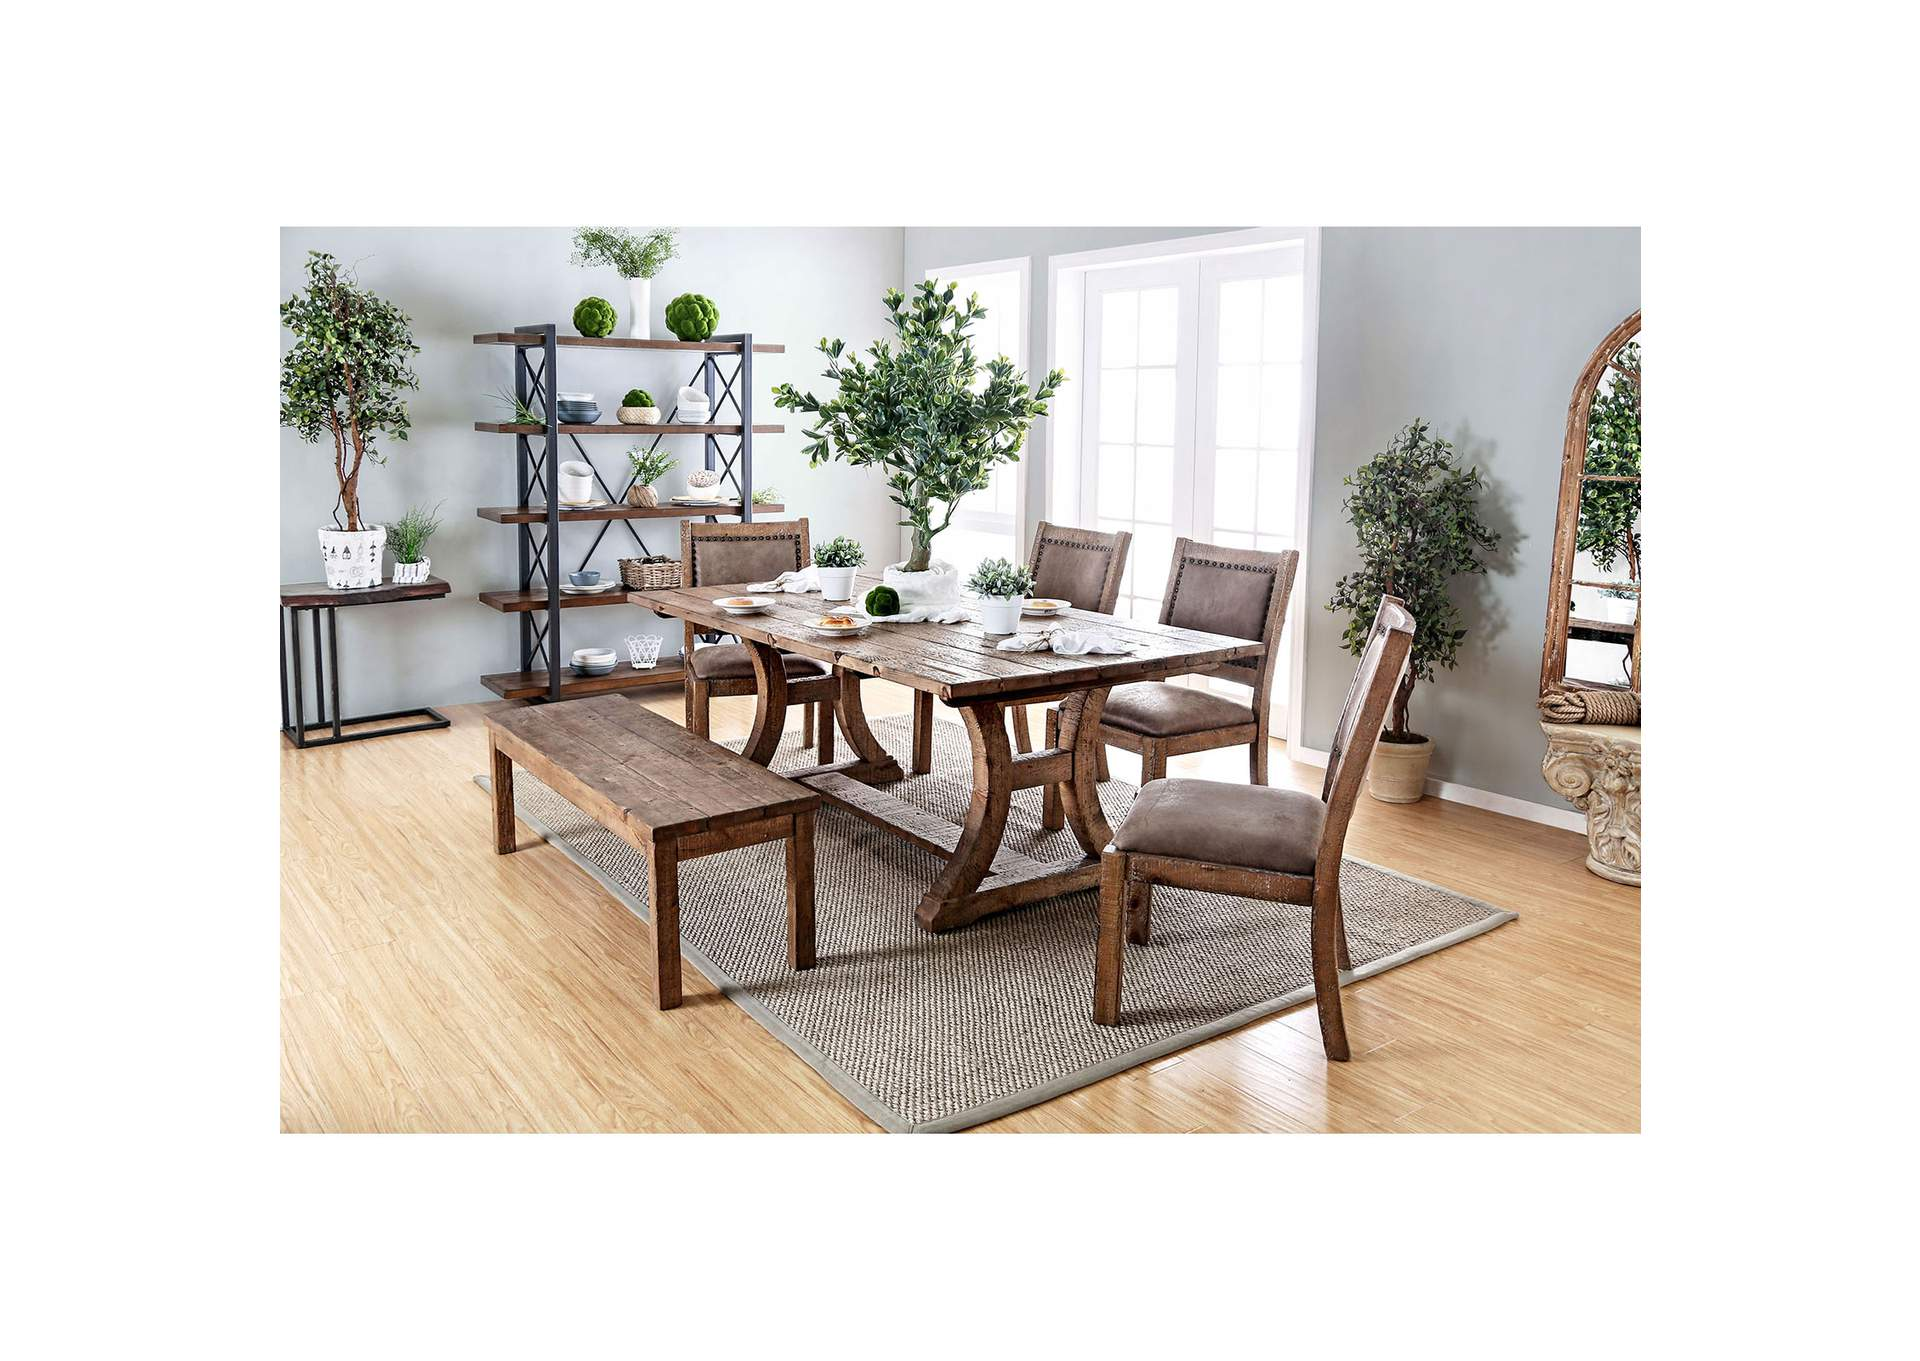 Amazing Just Furniture Gianna Rustic Pine 77 Dining Table W 4 Side Andrewgaddart Wooden Chair Designs For Living Room Andrewgaddartcom